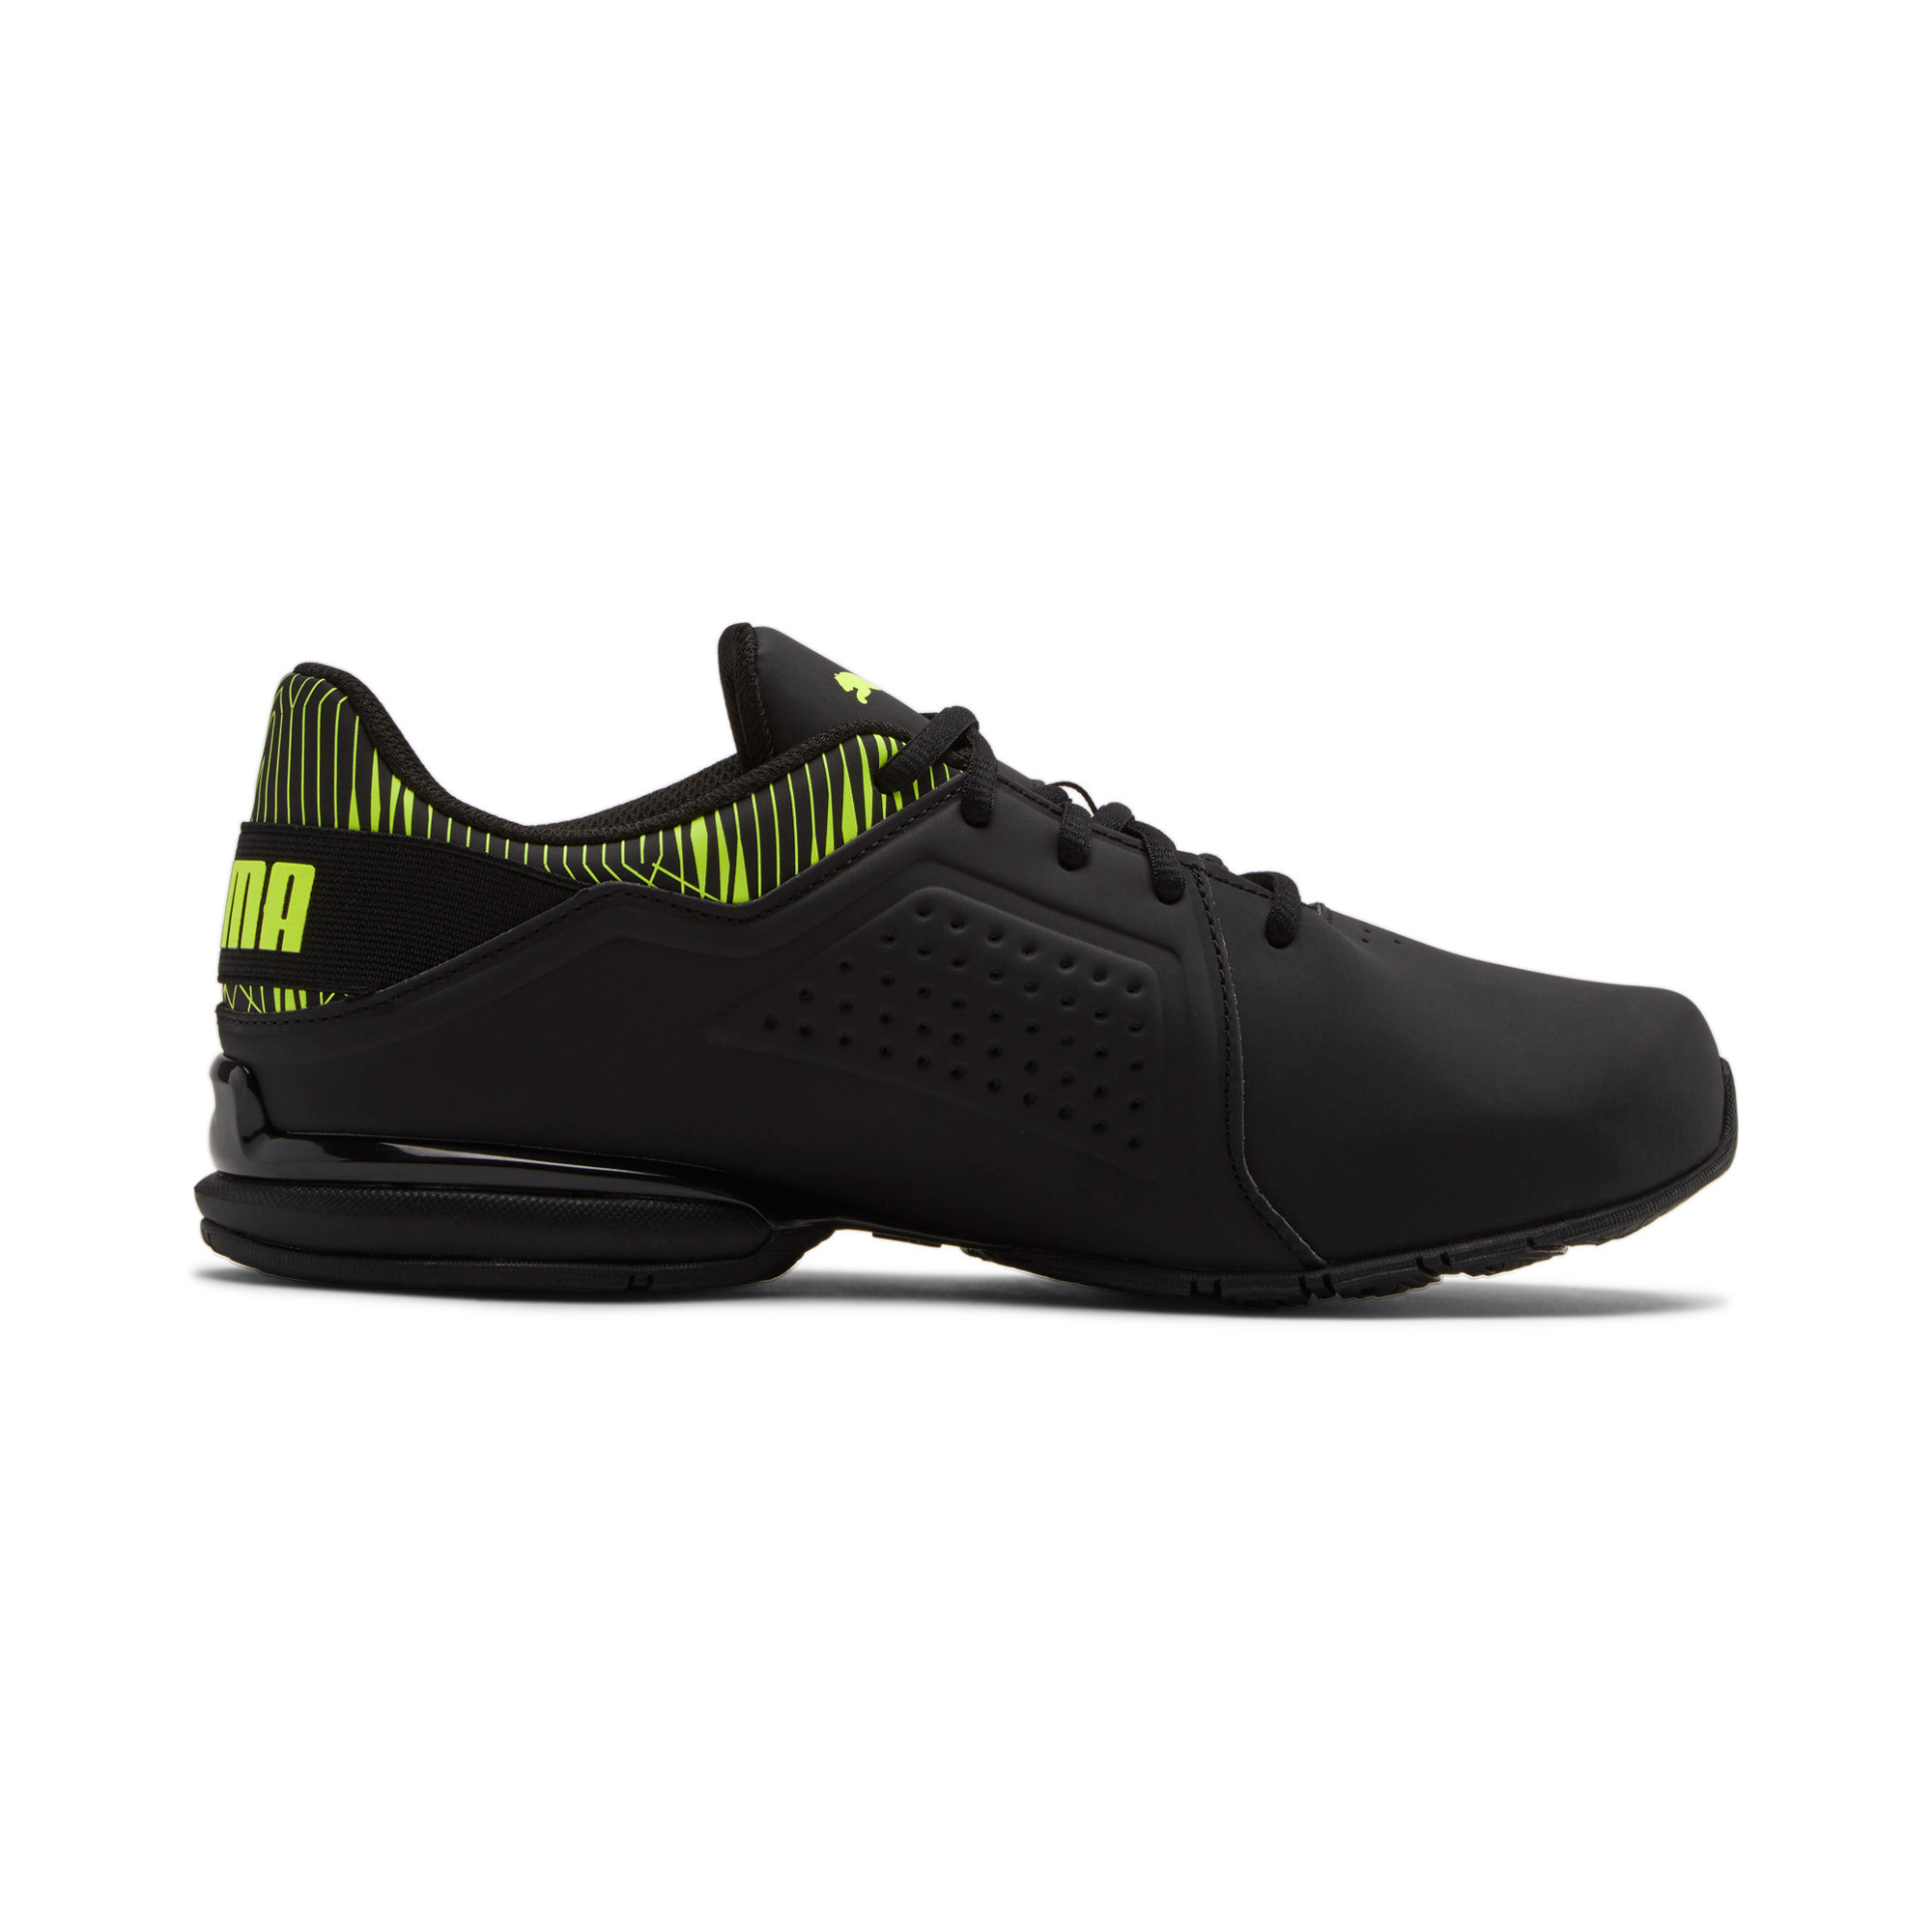 PUMA-Men-039-s-Viz-Runner-Graphic-Sneakers thumbnail 6